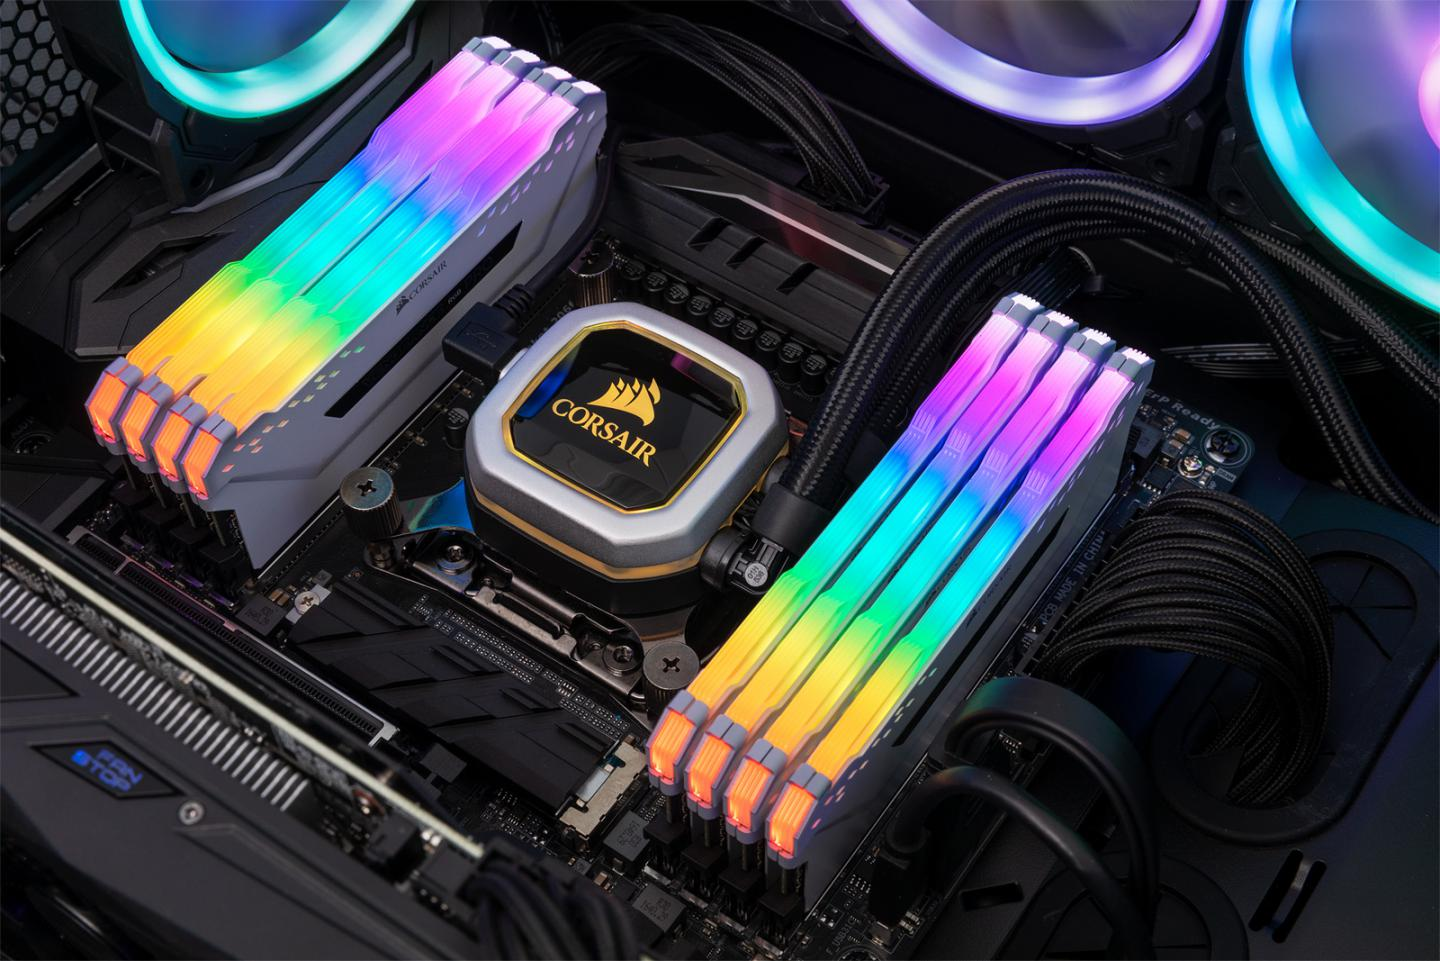 Corsair Launches iCUE, Vengeance RGB PRO DDR4 Memory and Obsidian